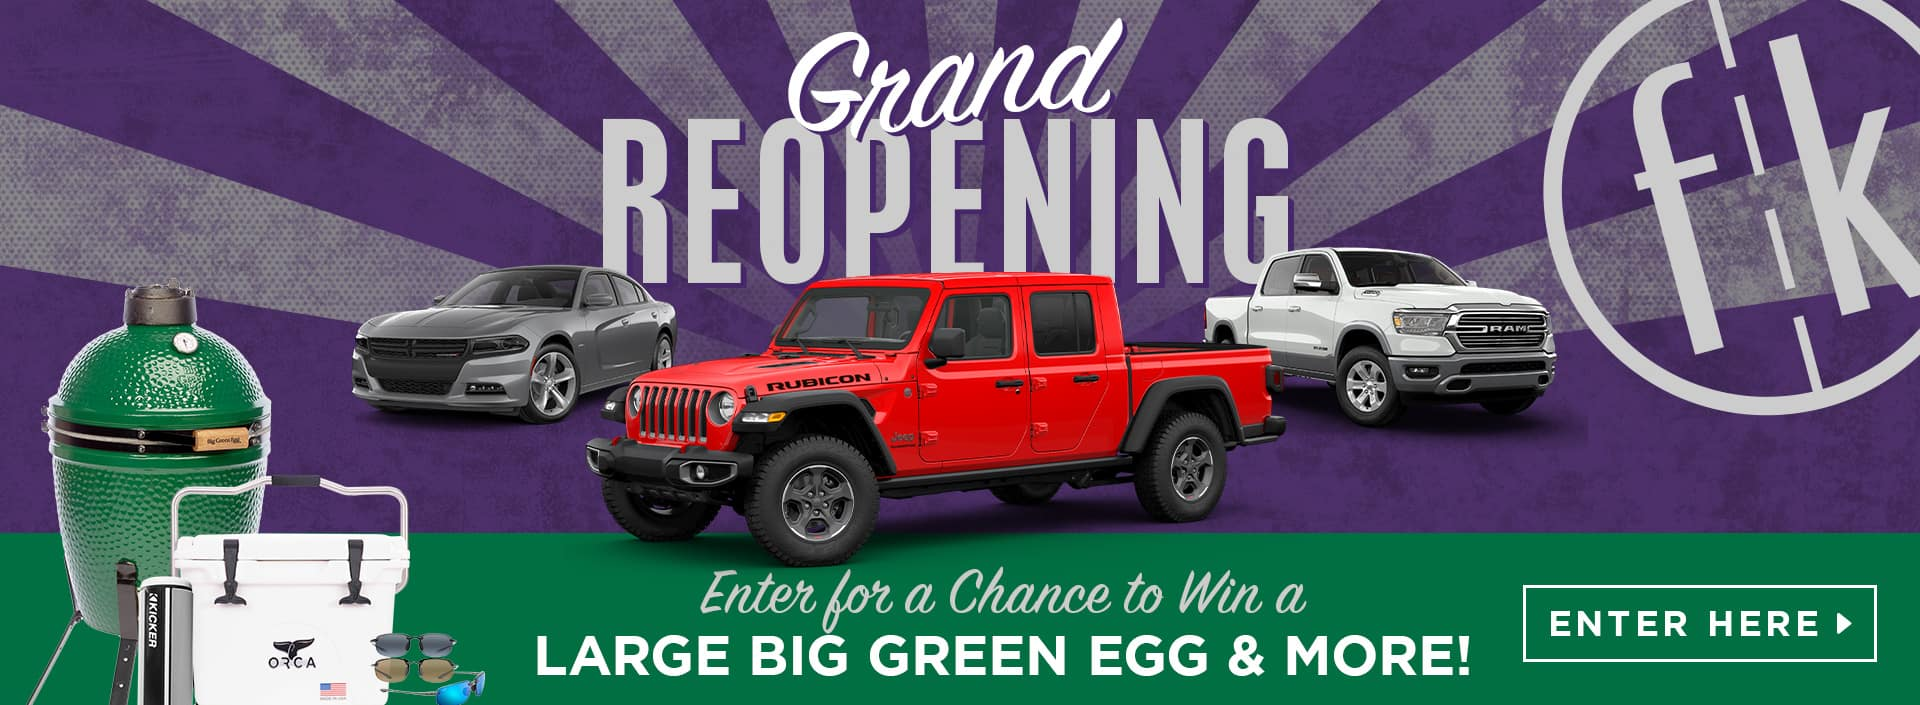 Grand Reopening Offer with a chance to with a Large Big Green Egg Grill & More